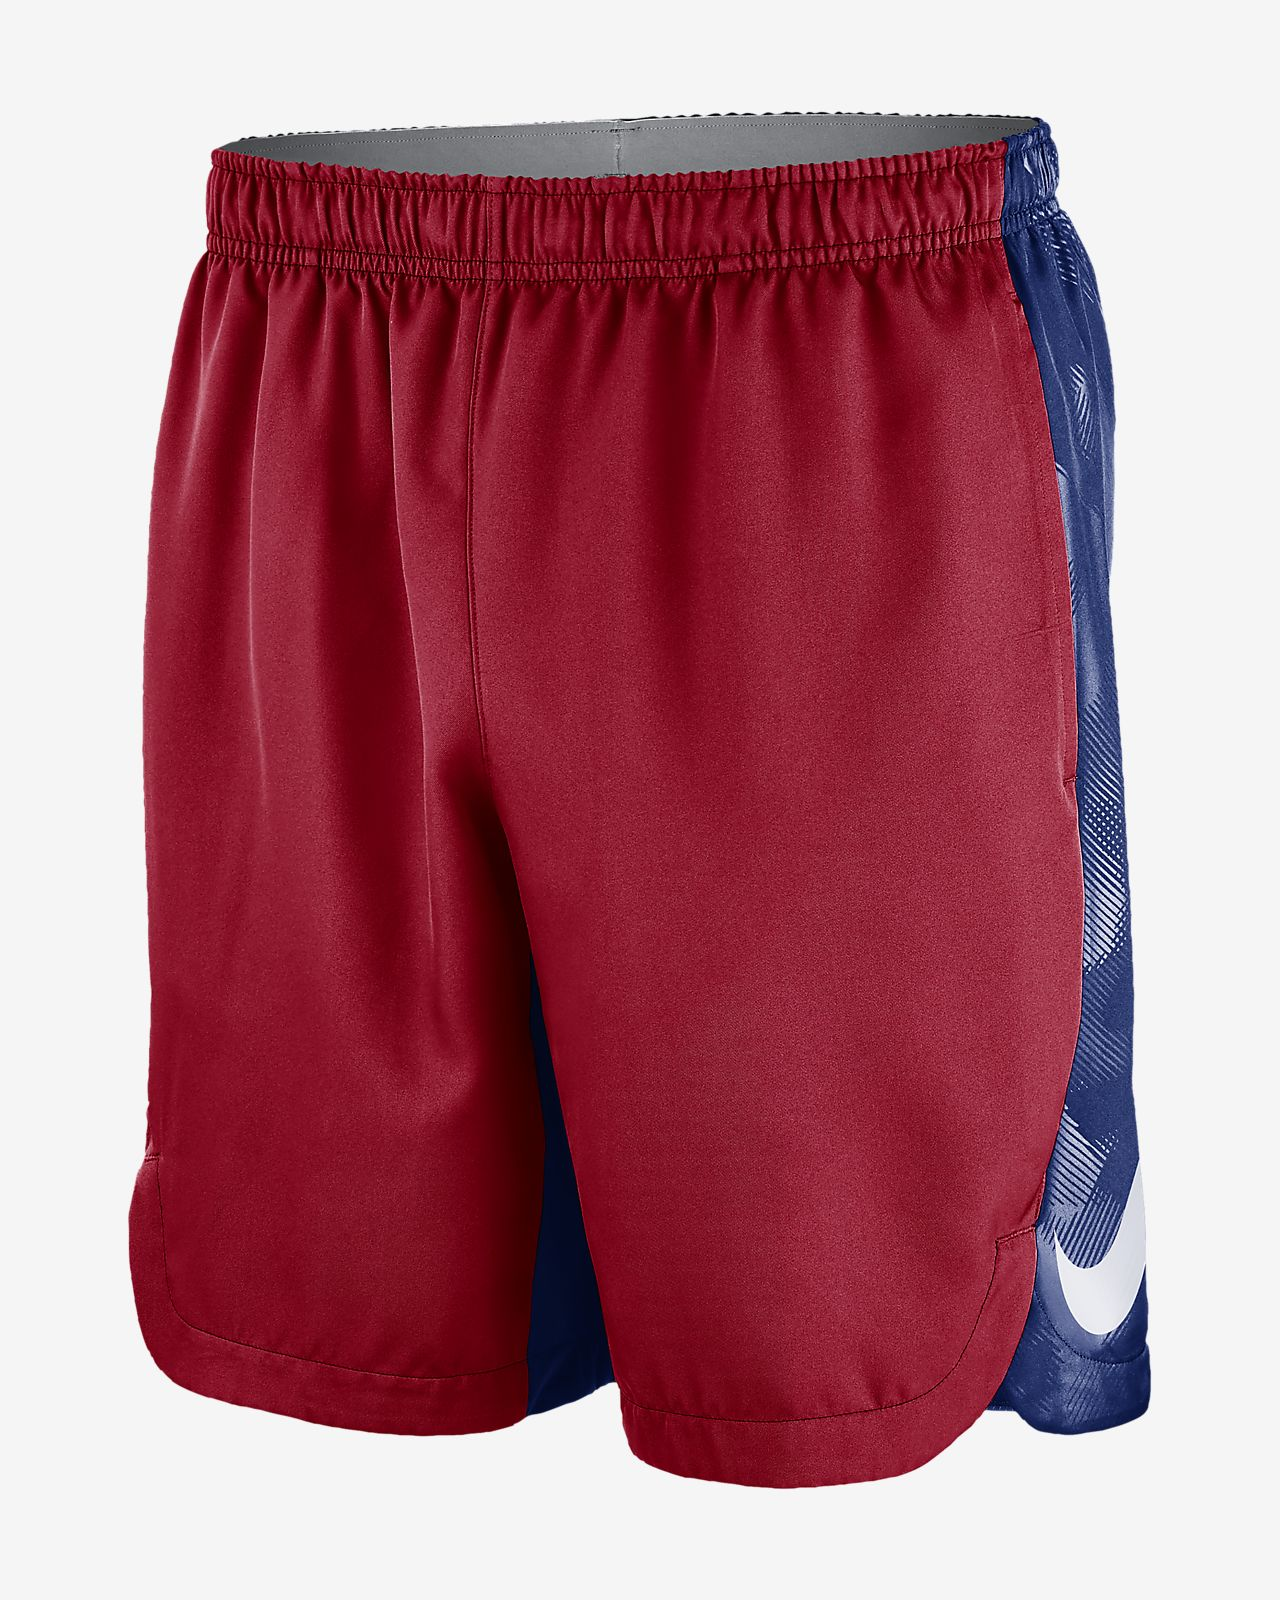 Nike Dri-FIT (MLB Rangers) Men's Shorts